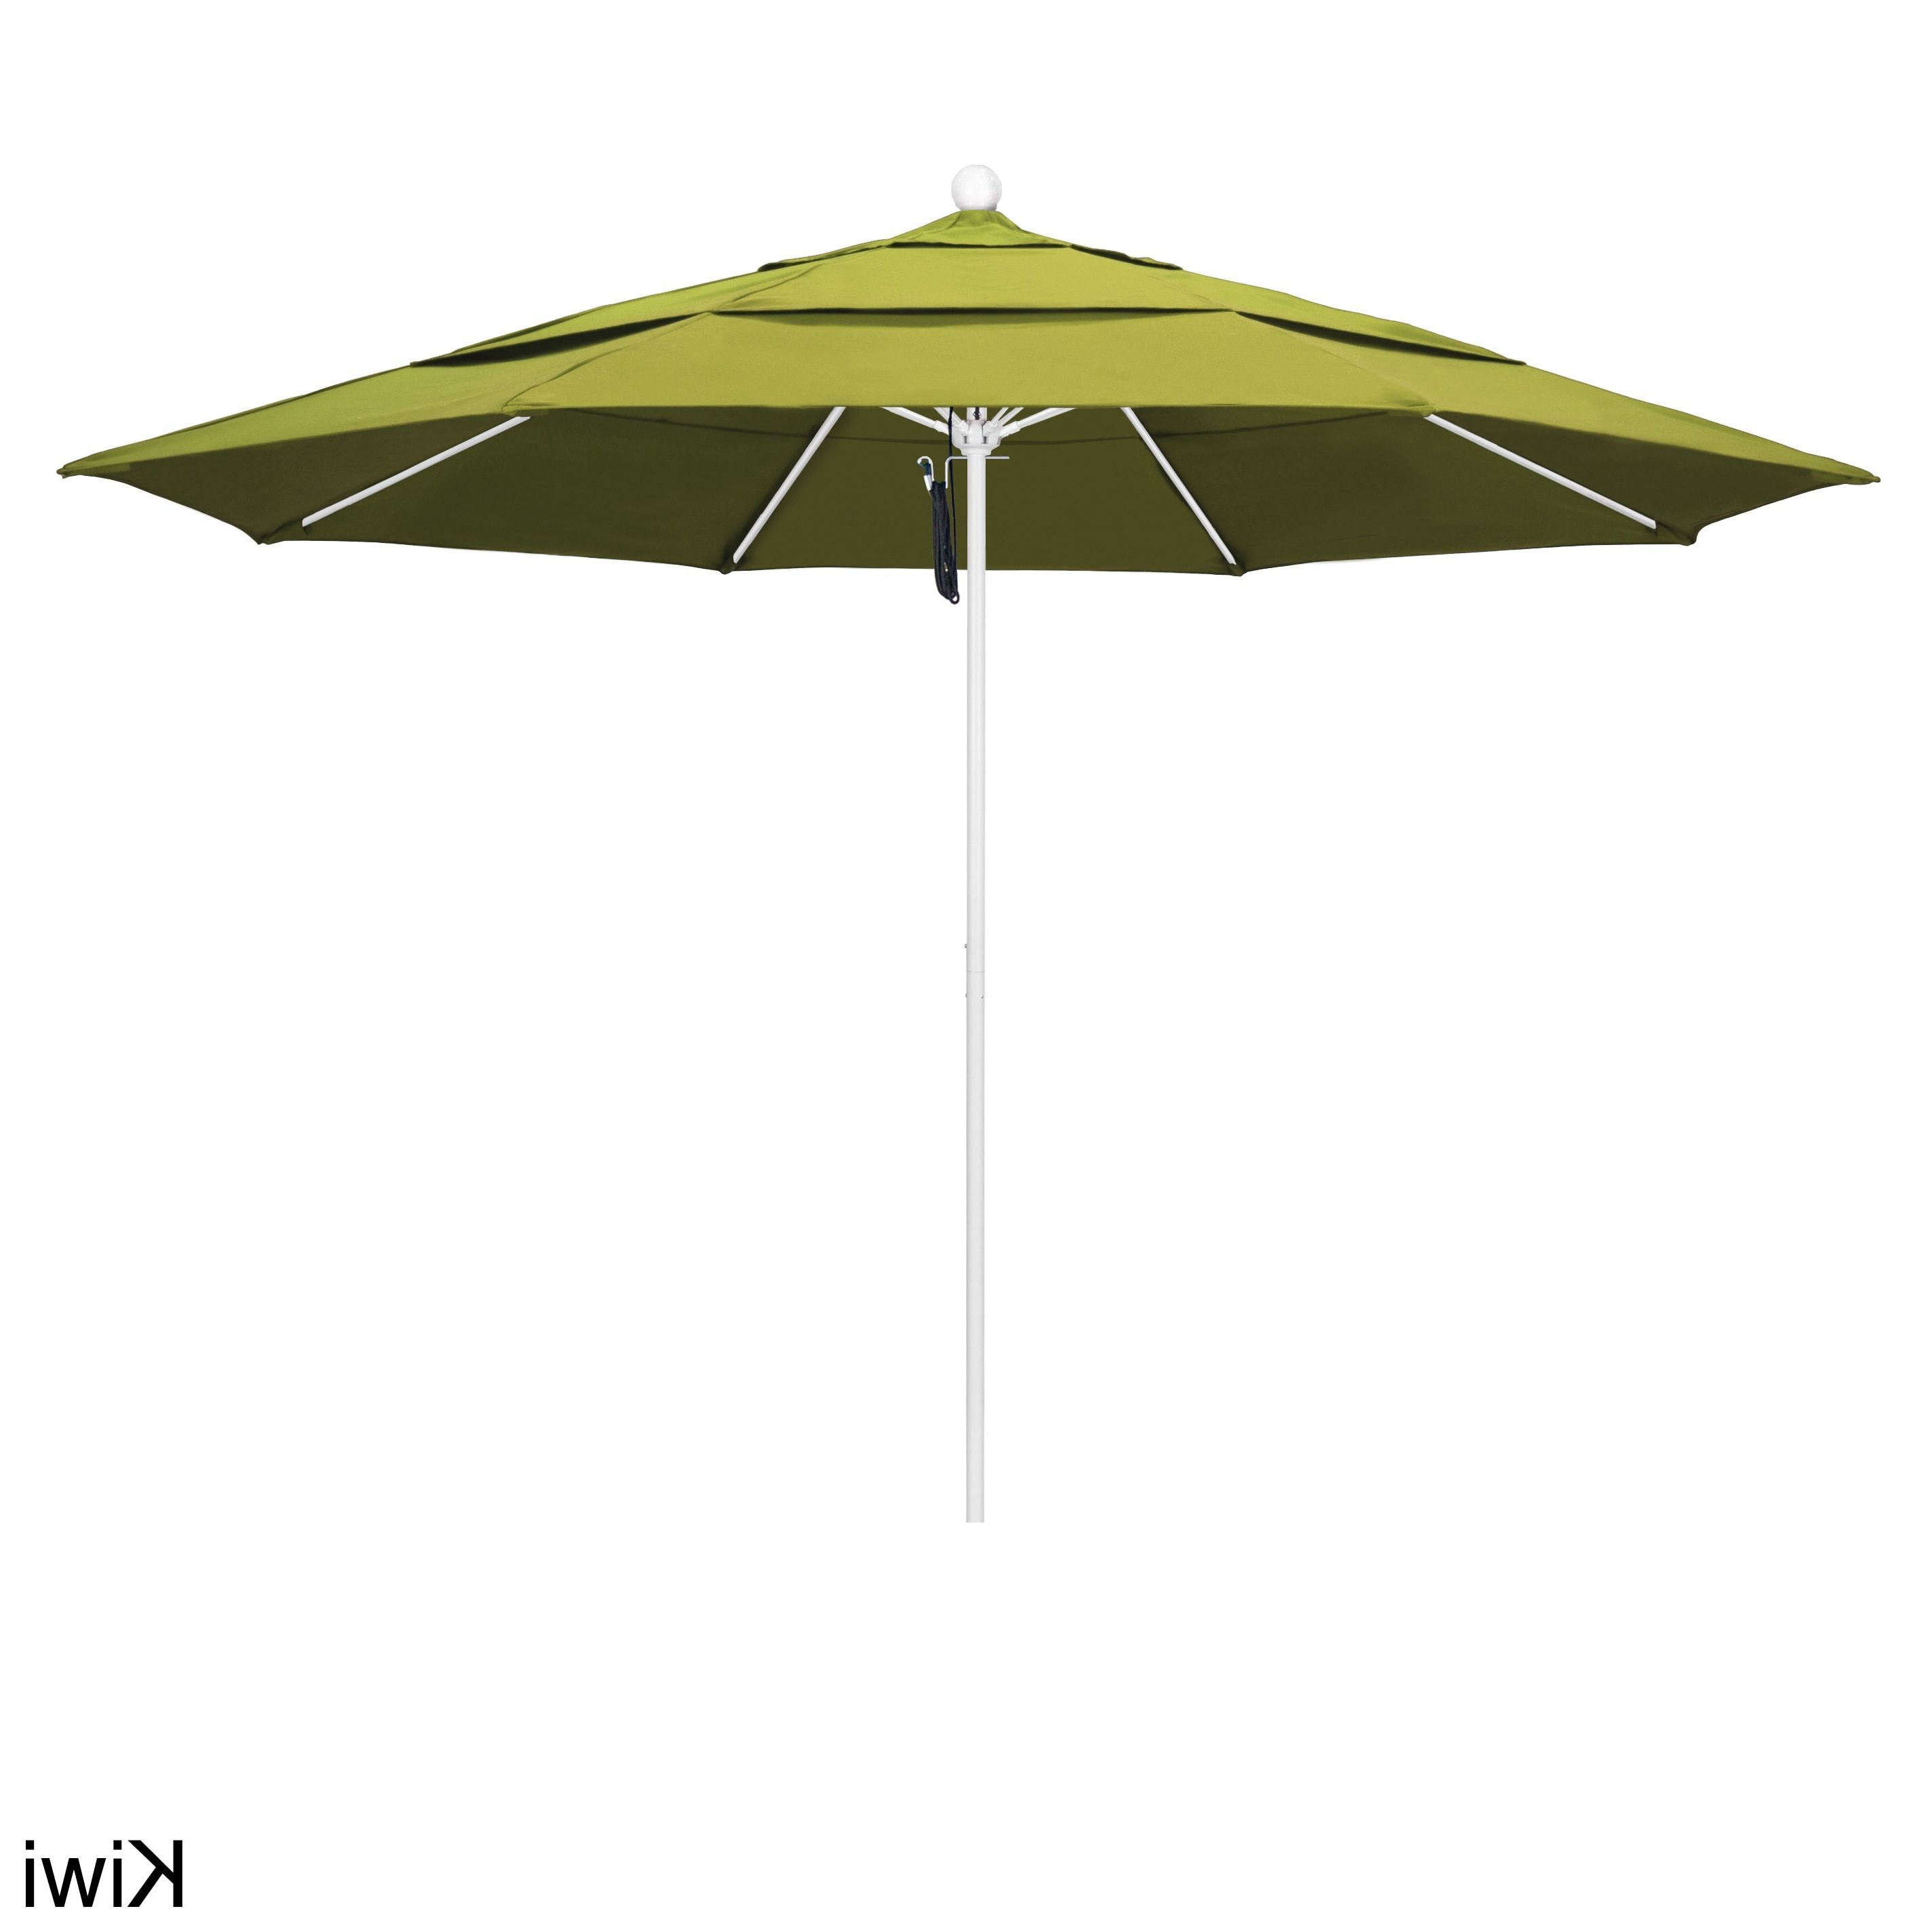 Newest California Umbrella 11' Rd Frame, Fiberglass Rib Market Umbrella Within Mucci Madilyn Market Sunbrella Umbrellas (View 13 of 20)